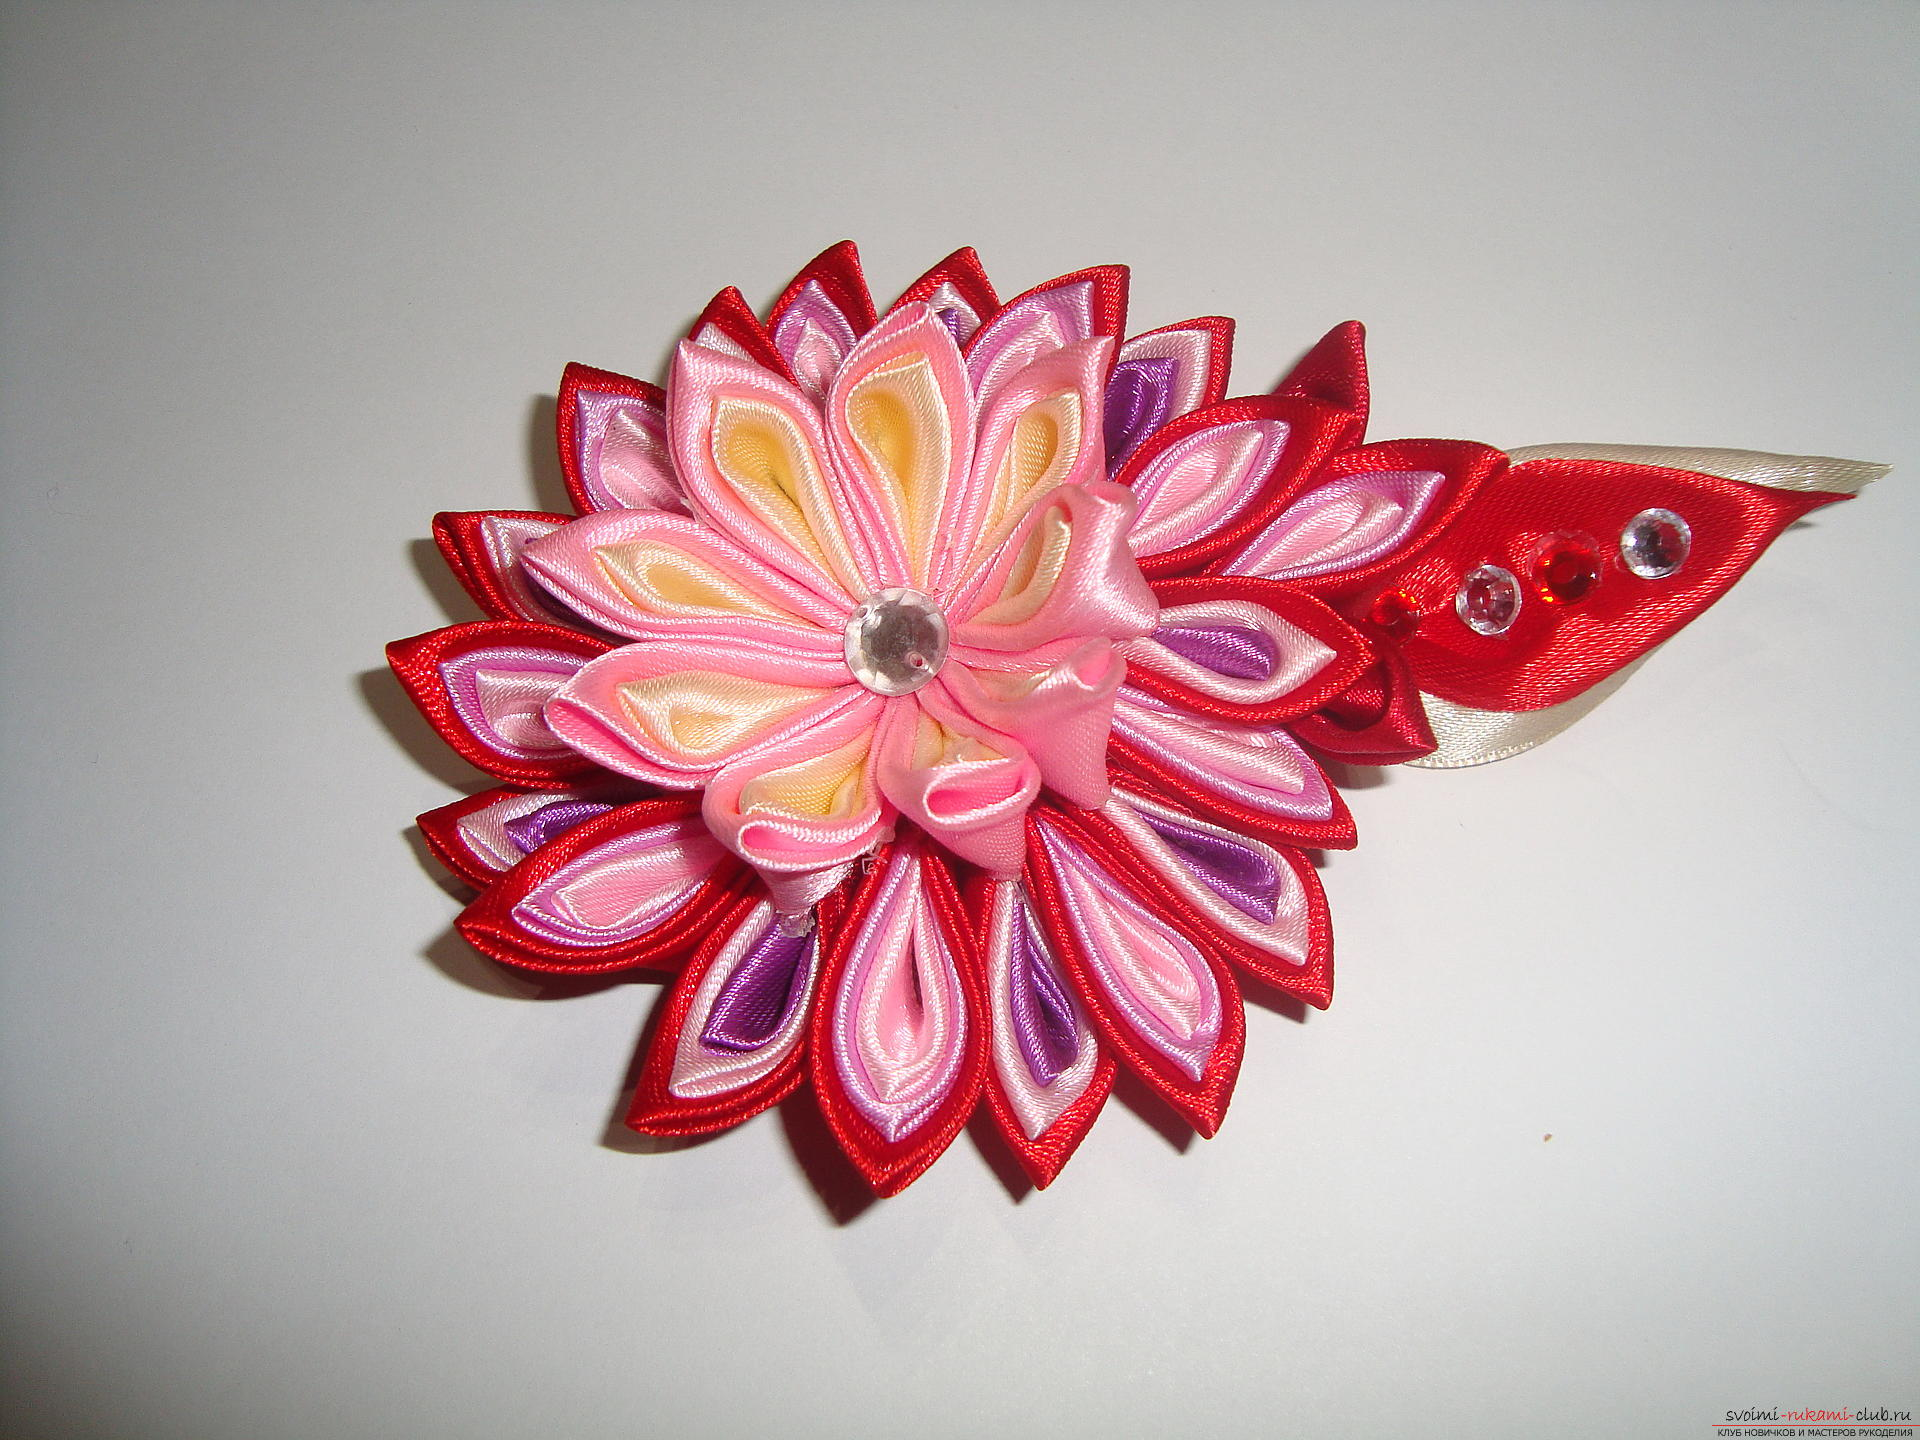 A detailed guide with a photo on making a hairpin in the shape of a flower with multi-colored petals in Kansas technique. Photo №1